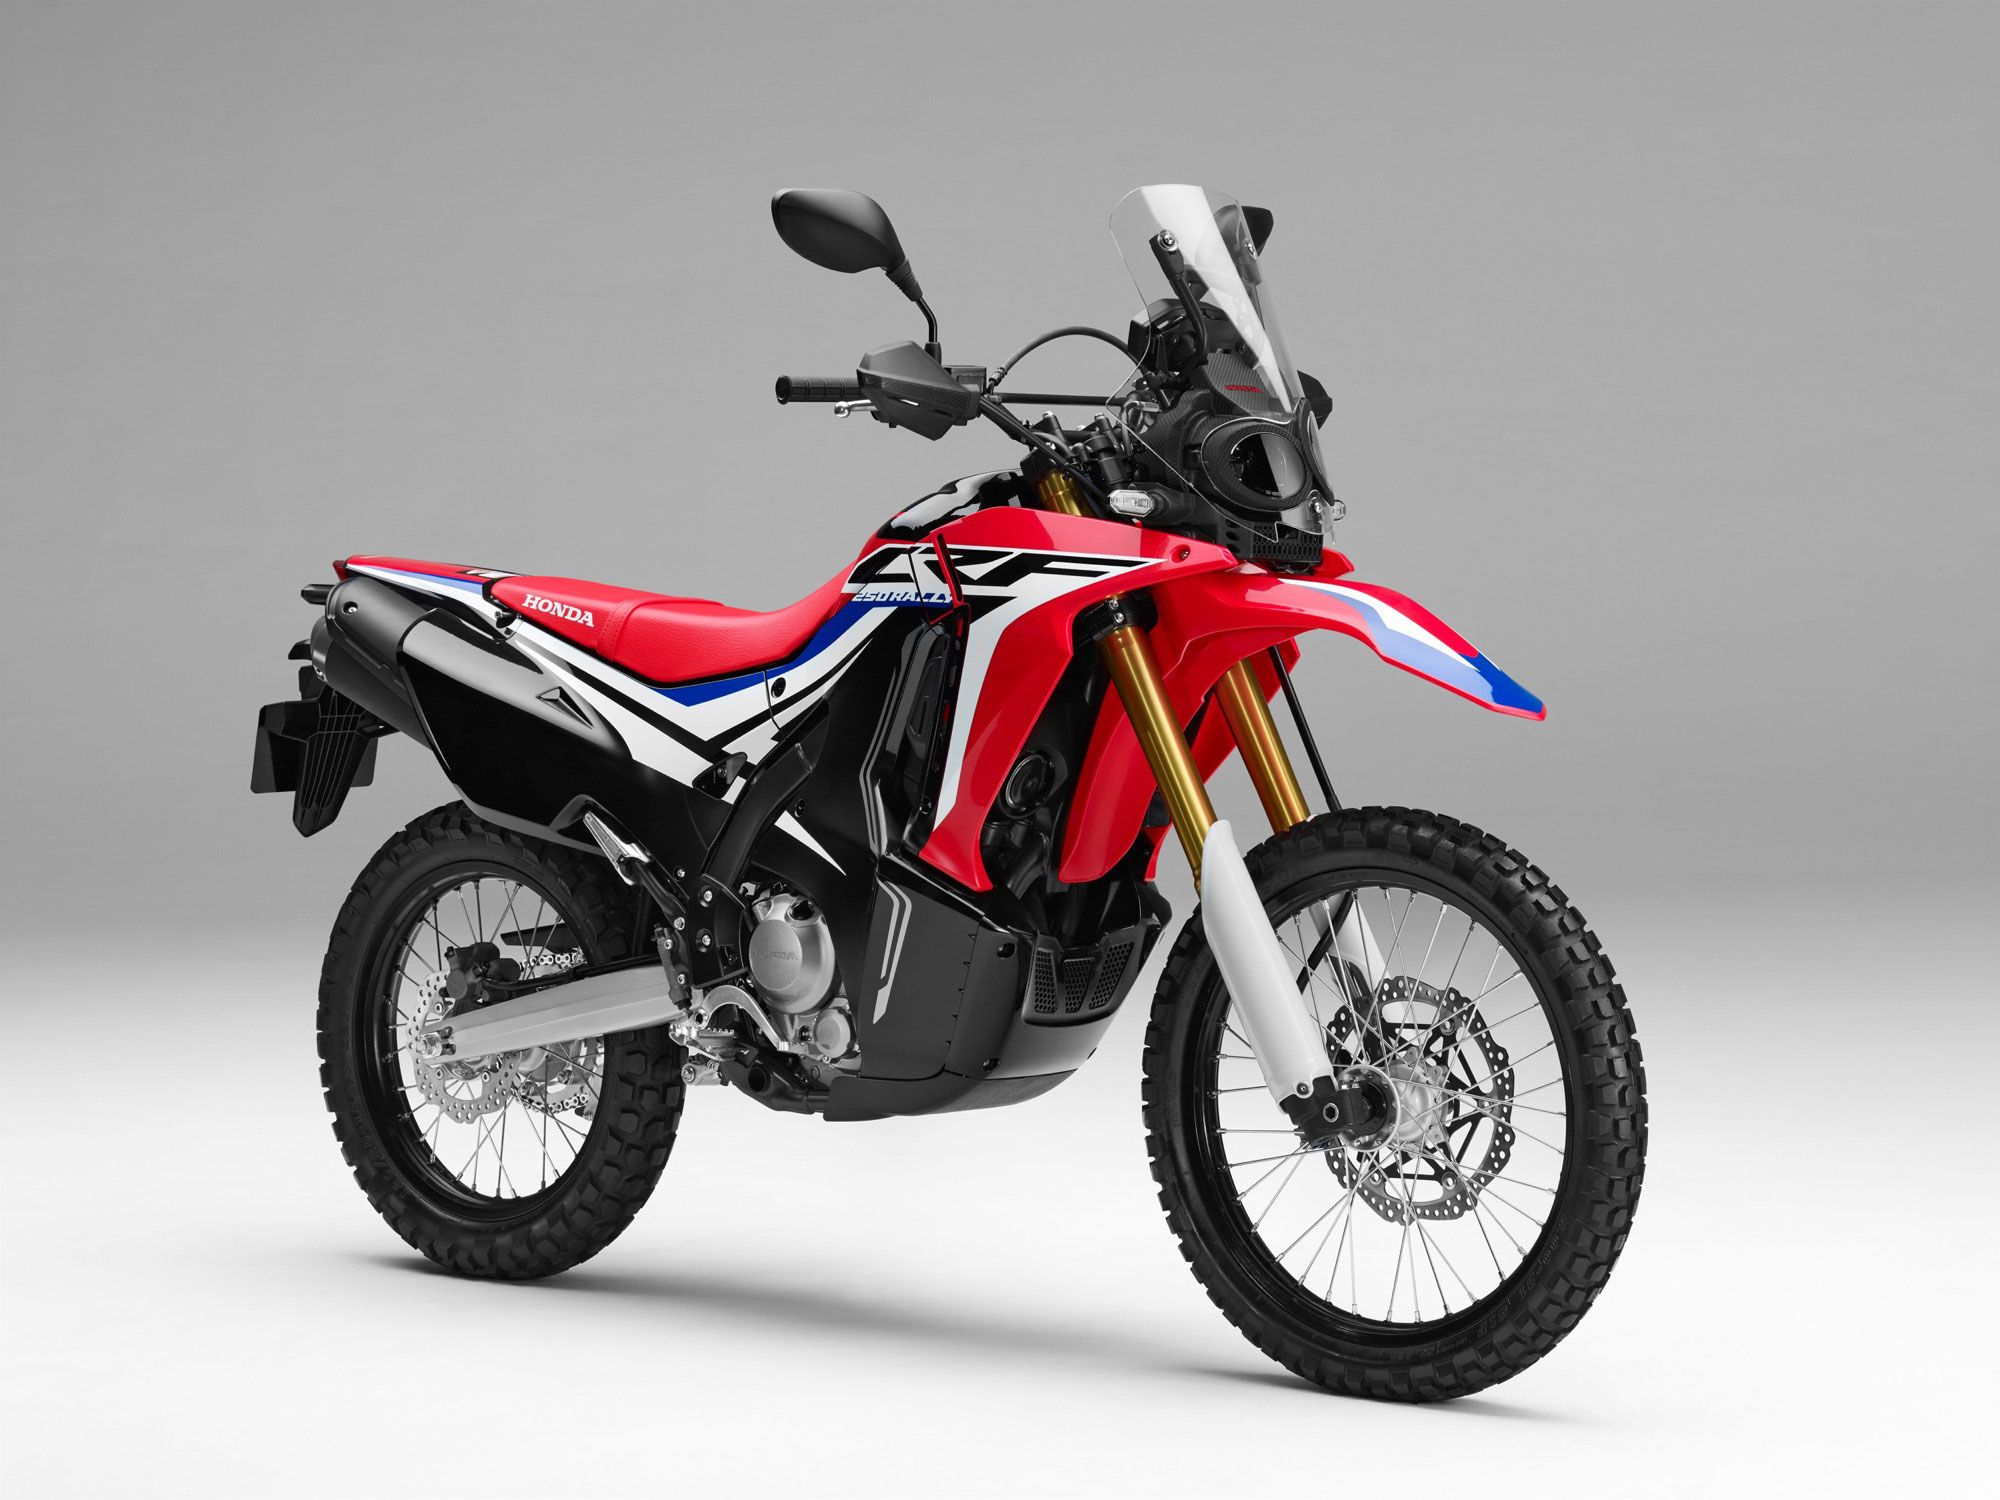 It Has Long Been Waiting For The Premiere Of New Honda Rally 2017 And Finally Presented An Easy Enduro 20 Months After